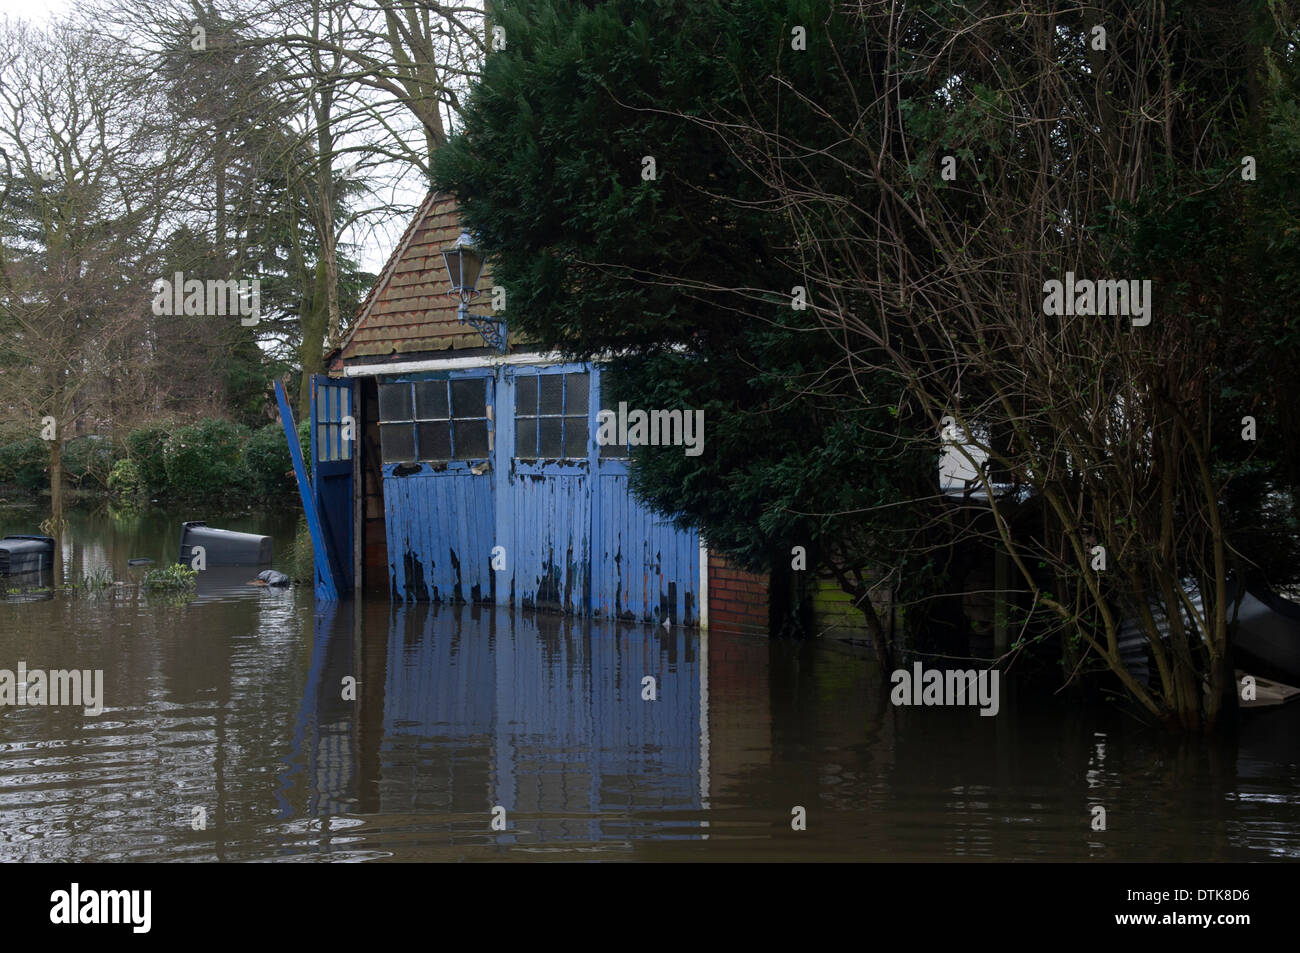 Flooded residential area and park in Staines. Set of old blue wooden garage doors and side of house. - Stock Image